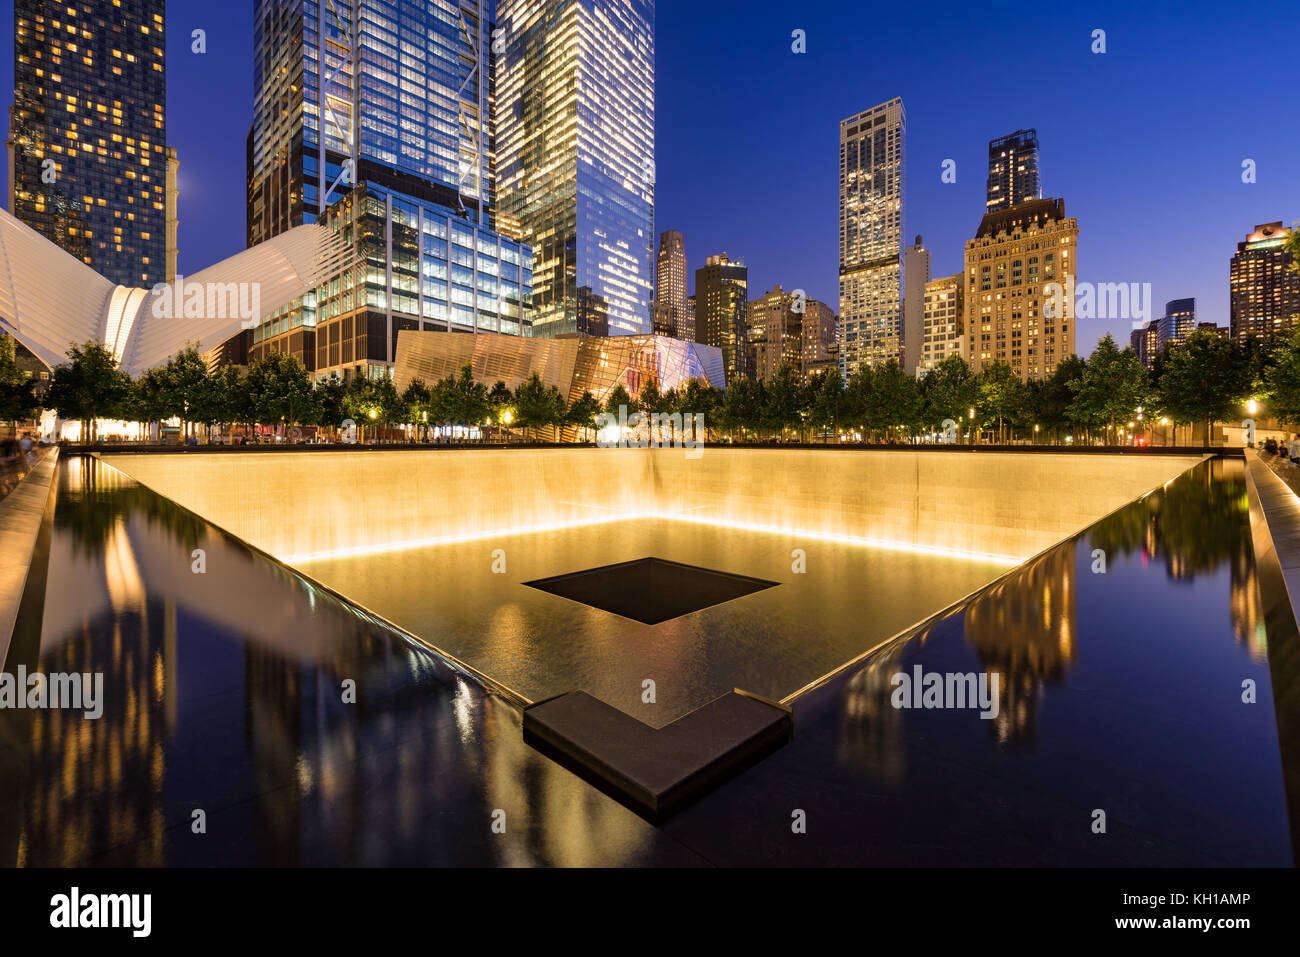 The North Reflecting Pool illuminated at twilight with view of the World Trade Center Tower 3 and 4 and the Oculus. Stock Photo